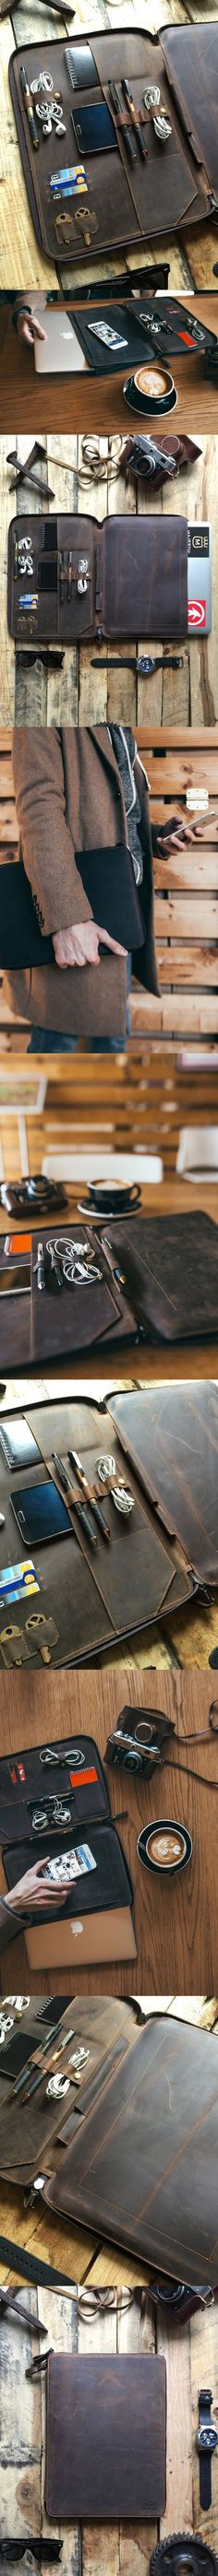 This full grain leather portfolio, leather organizer, leather folder was carefully designed to protect your Laptop, tablet, and all of your daily essentials. The beautiful distressed leather gives a u (Diy Clothes Organizer) Leather Folder, Mode Man, Leather Portfolio, Things To Buy, Stuff To Buy, Mode Masculine, Leather Projects, Leather Men, Distressed Leather